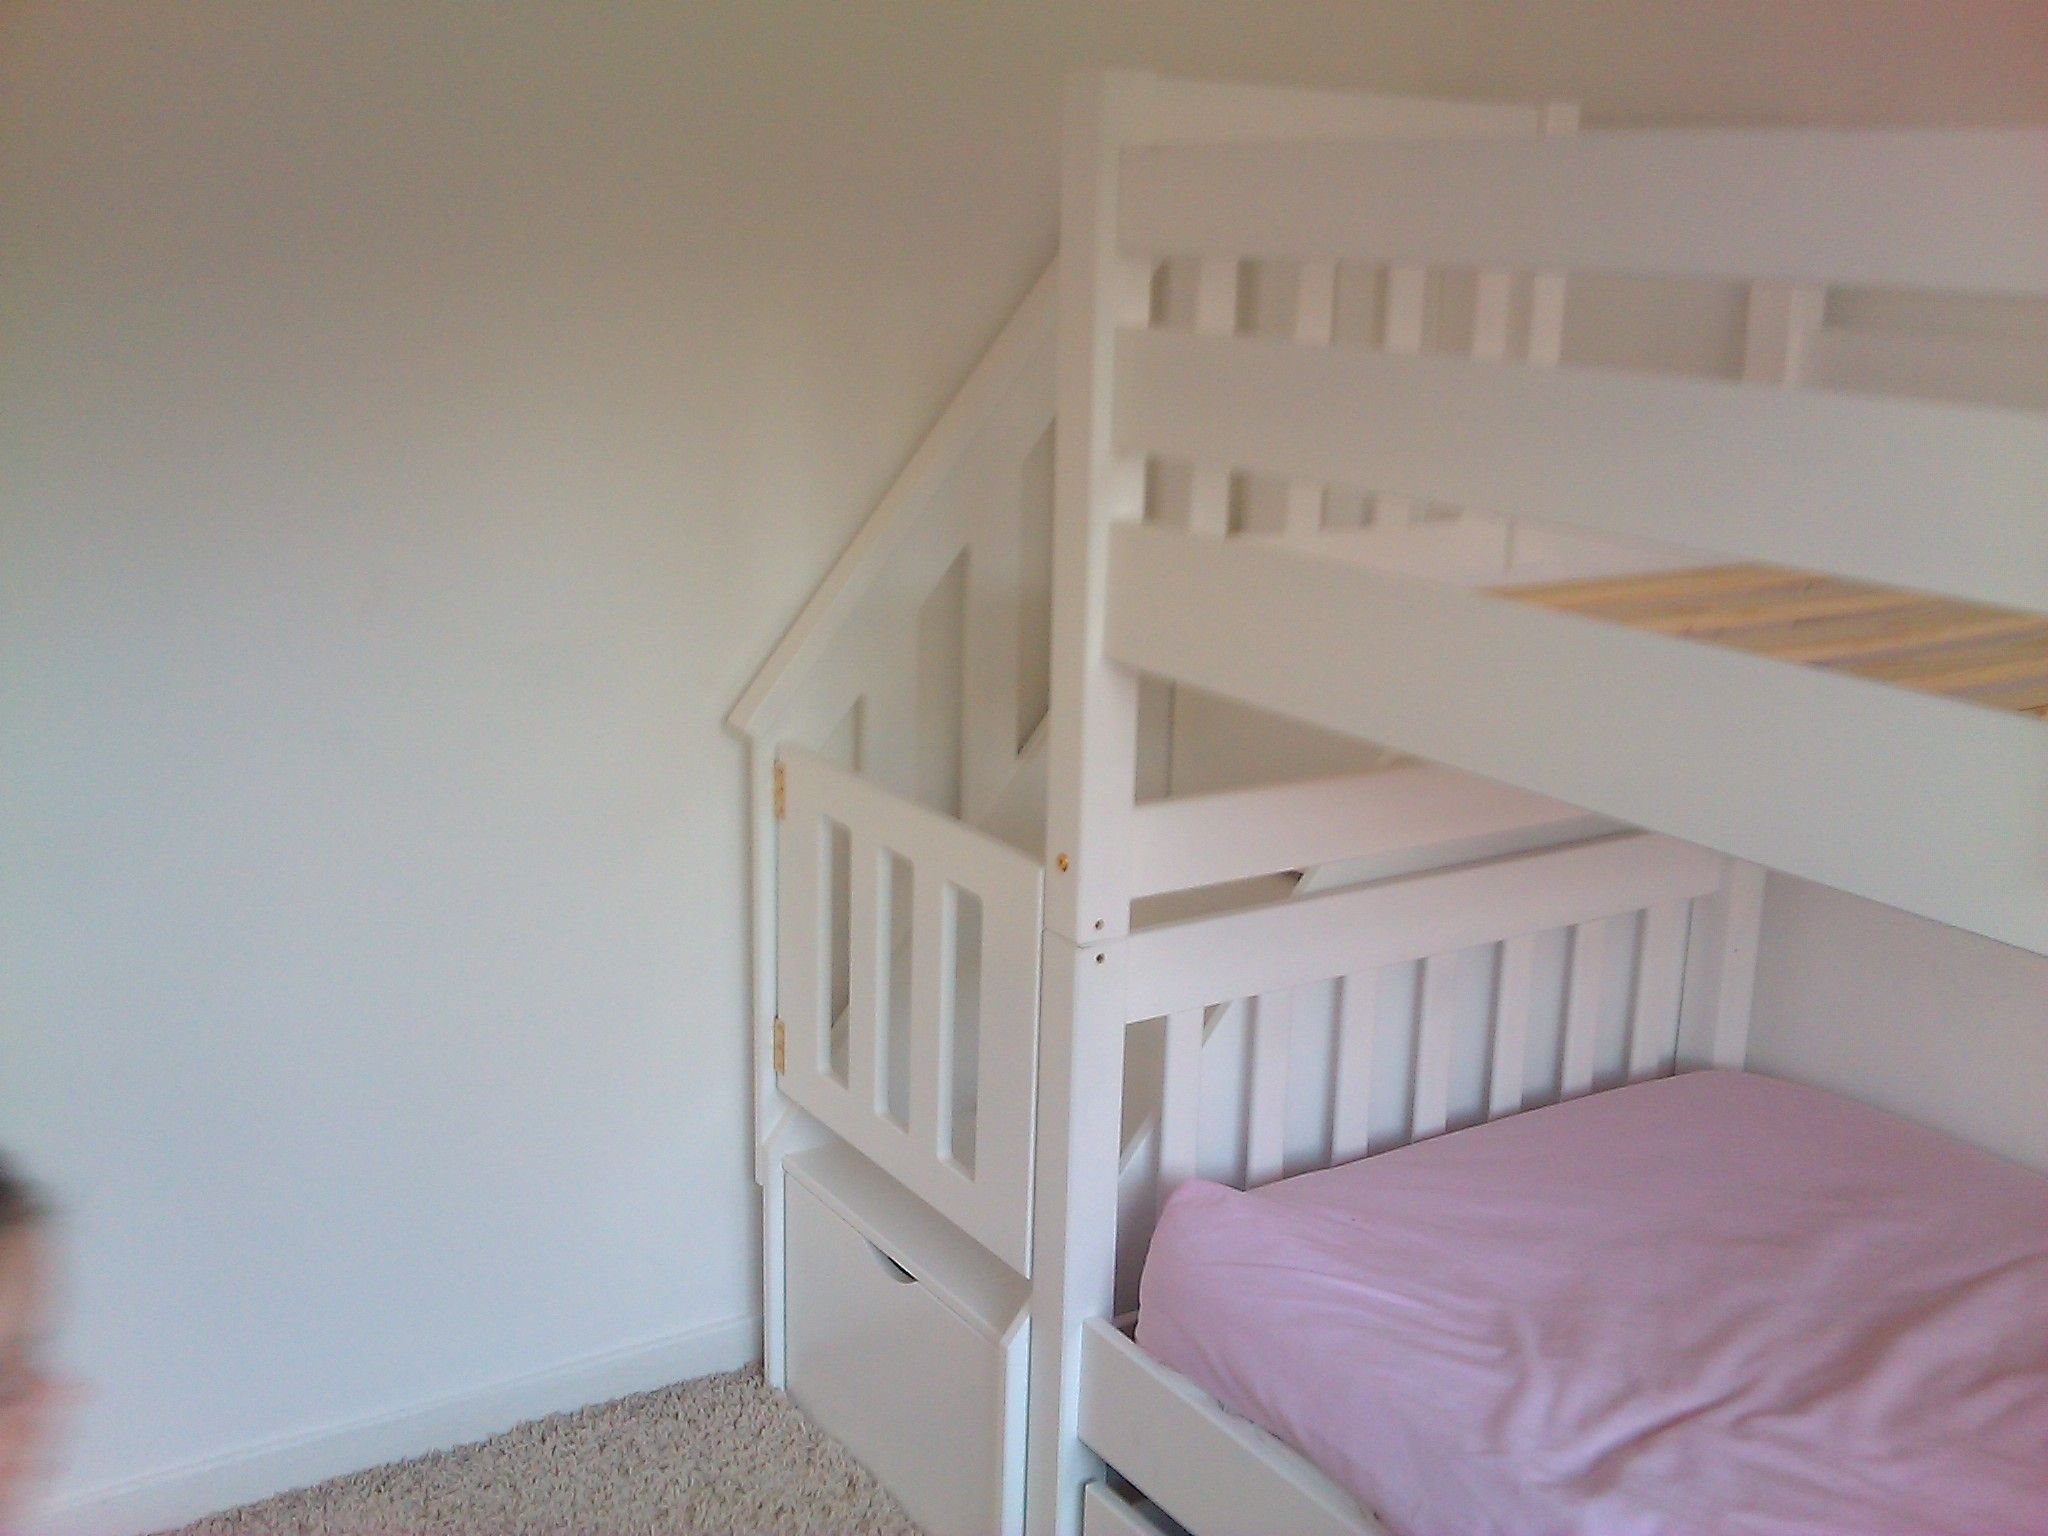 Baby bed gates - Bunk Bed Gate For Our New Little Climber Who Likes To Explore Her Brother S Room